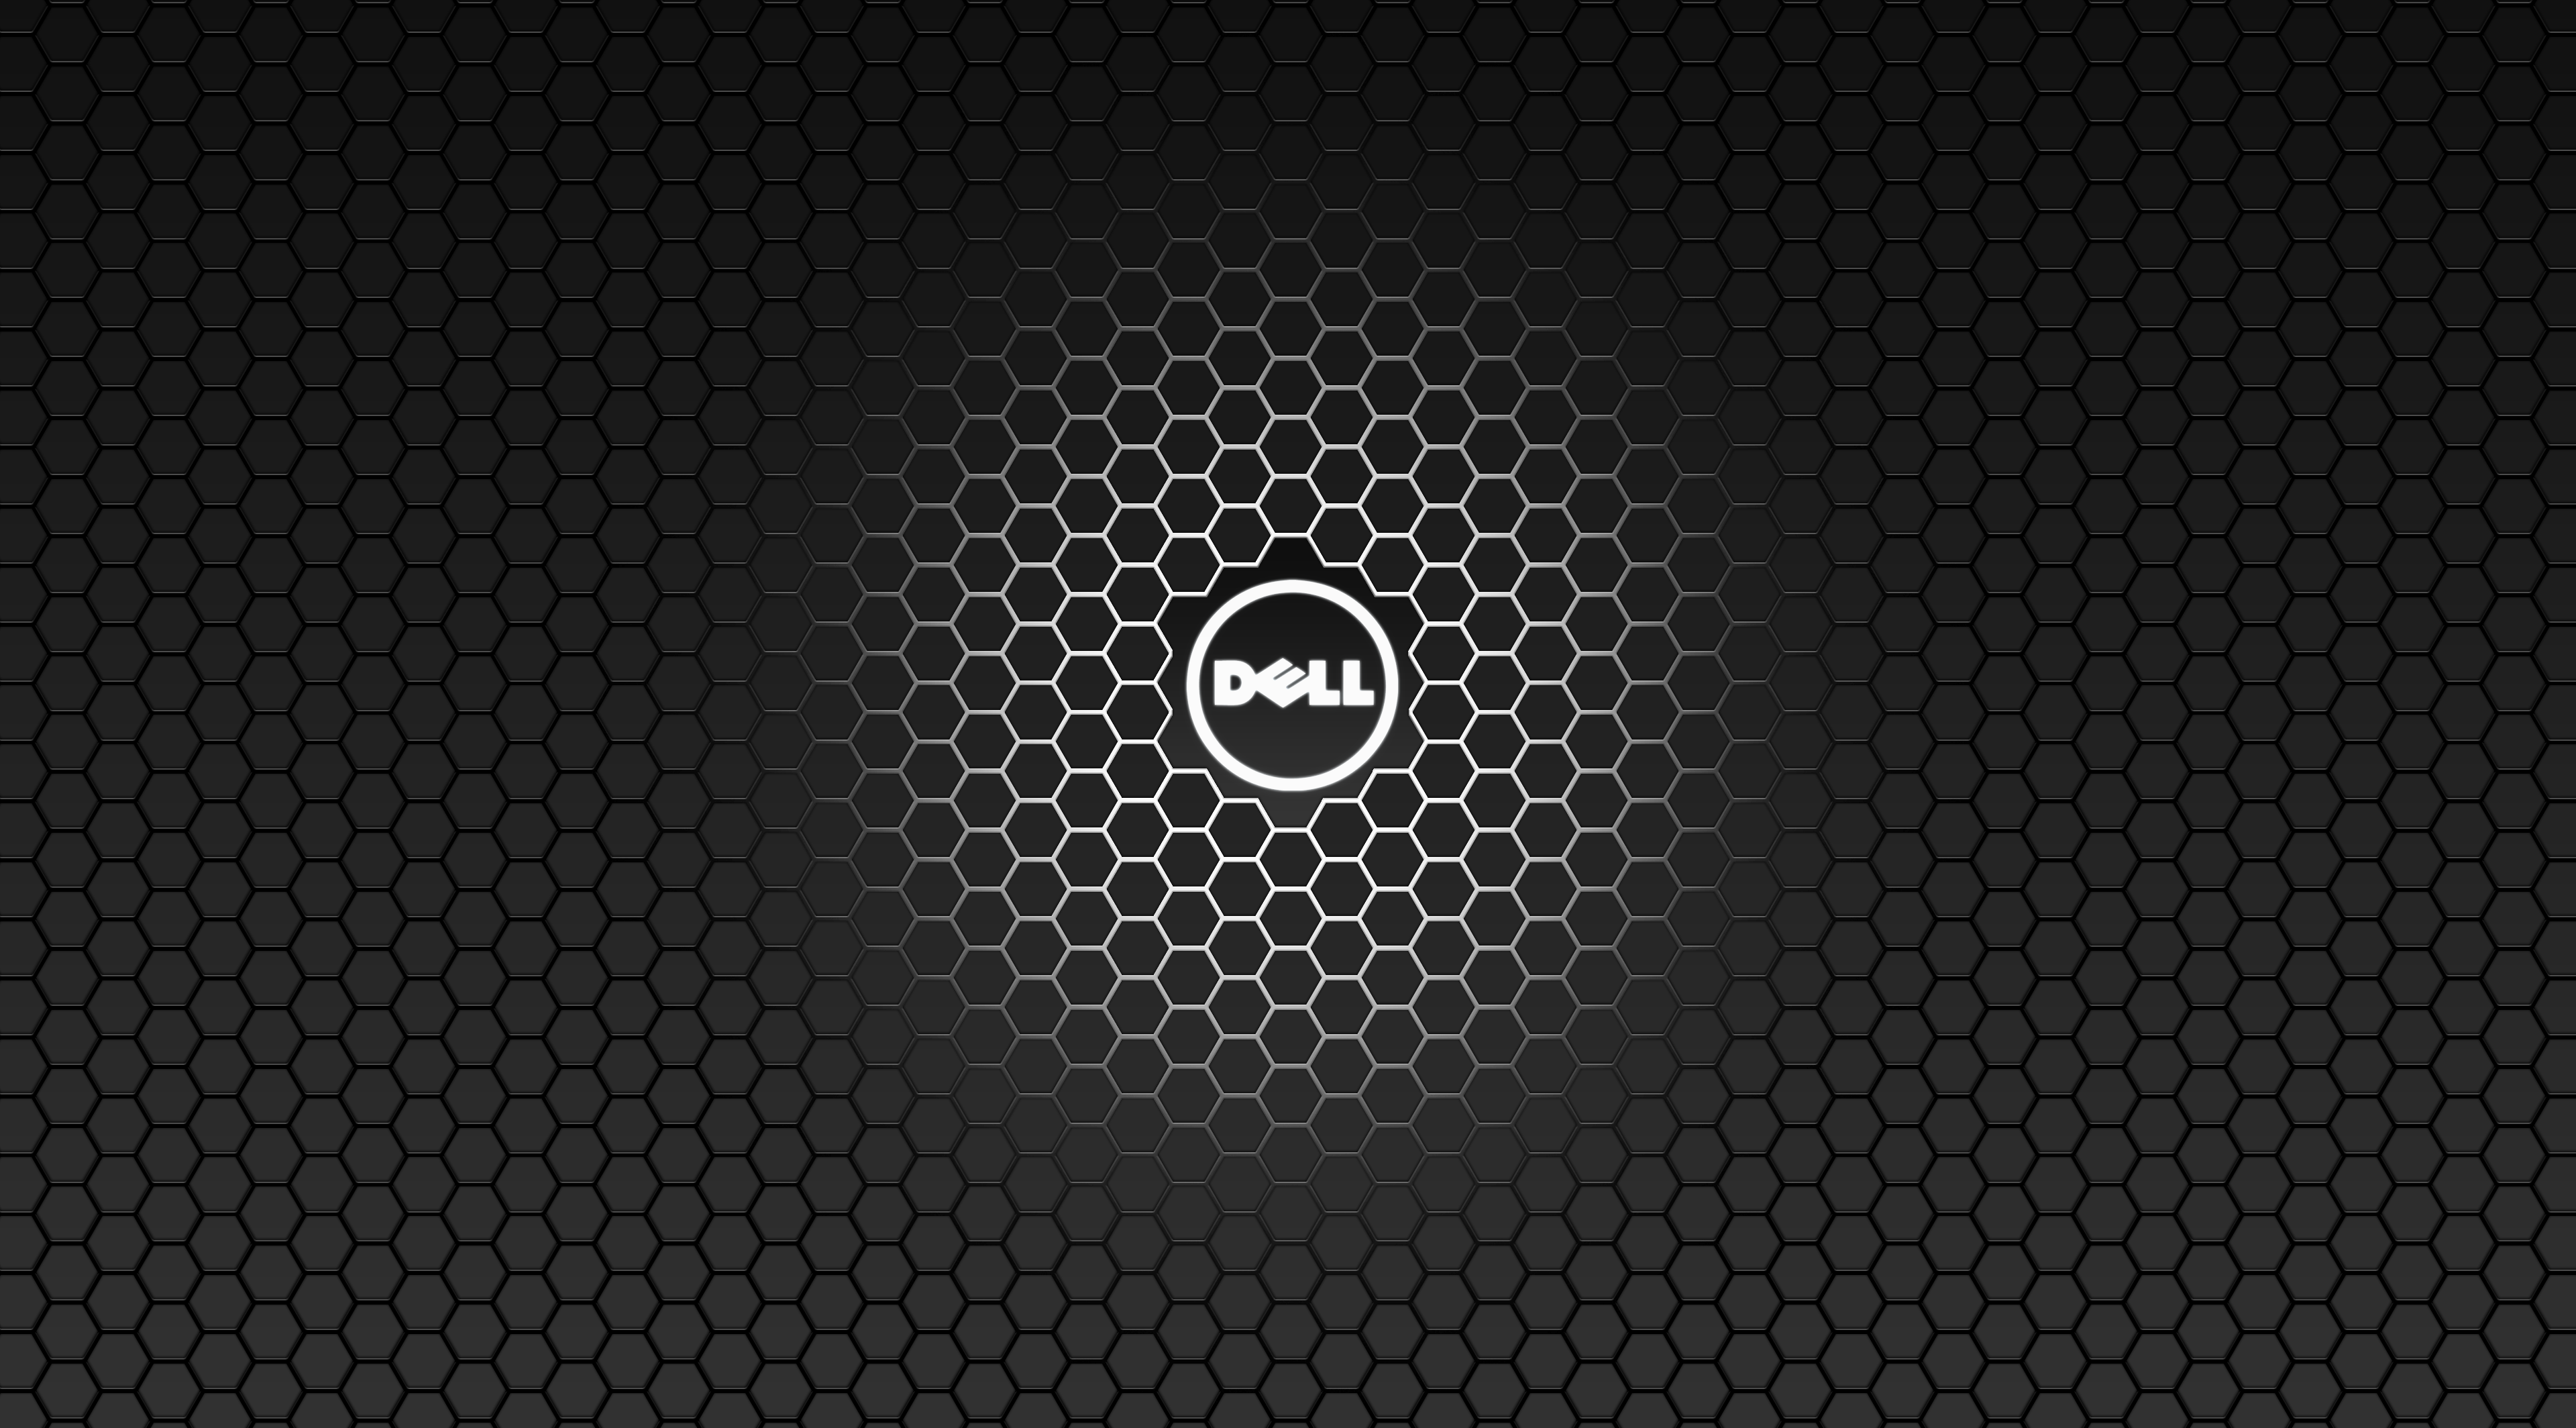 technology dell black hexagon wallpaper